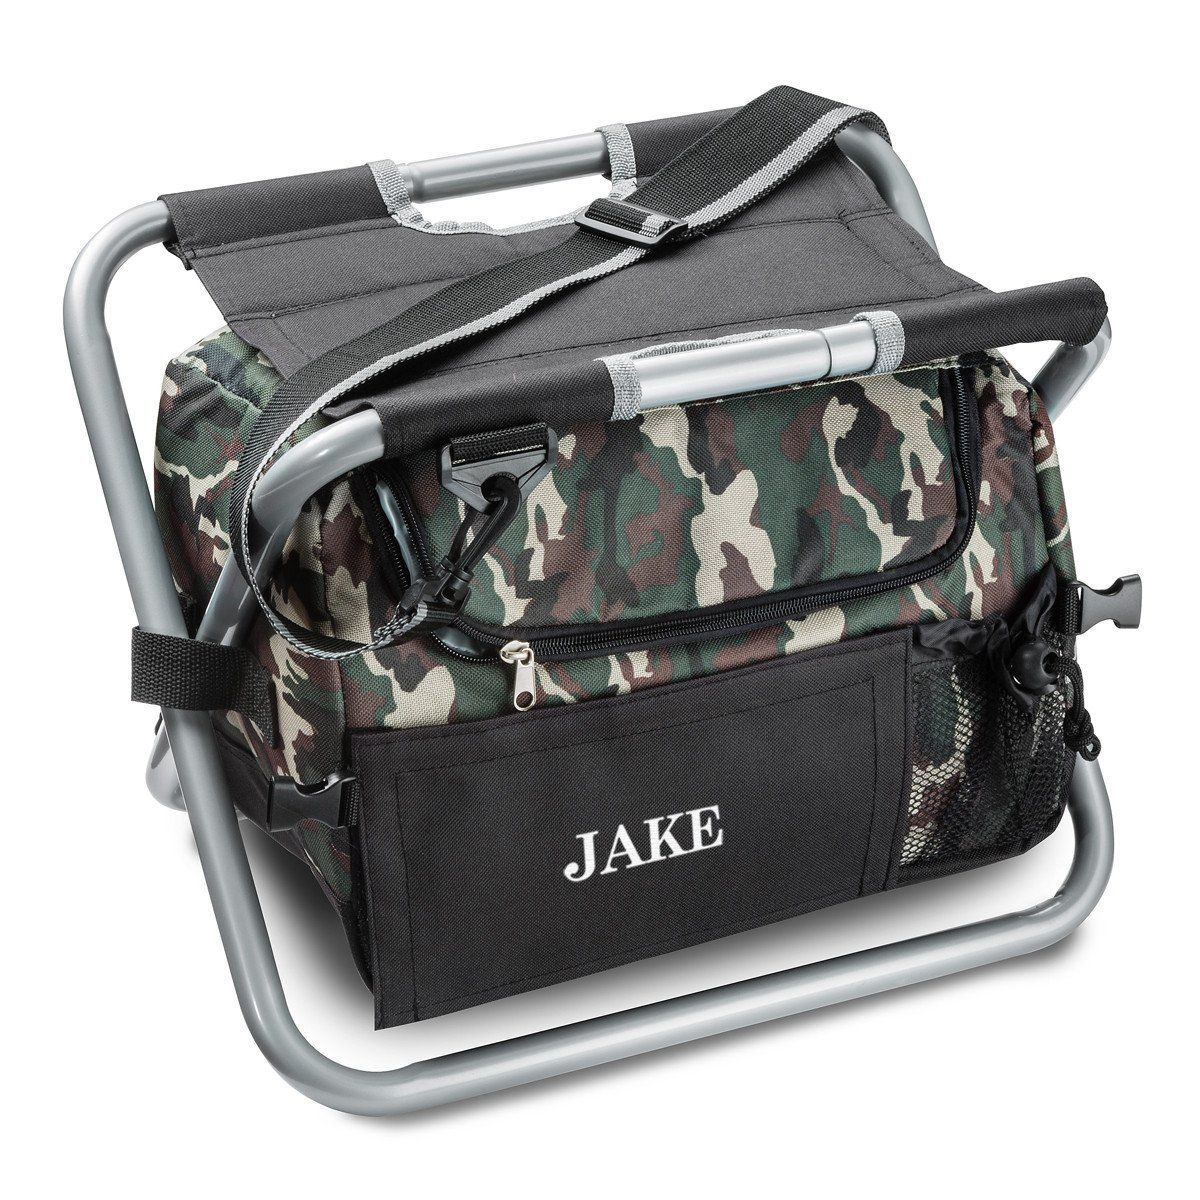 Personalized Cooler Chair - Camo - Sit N' Sip